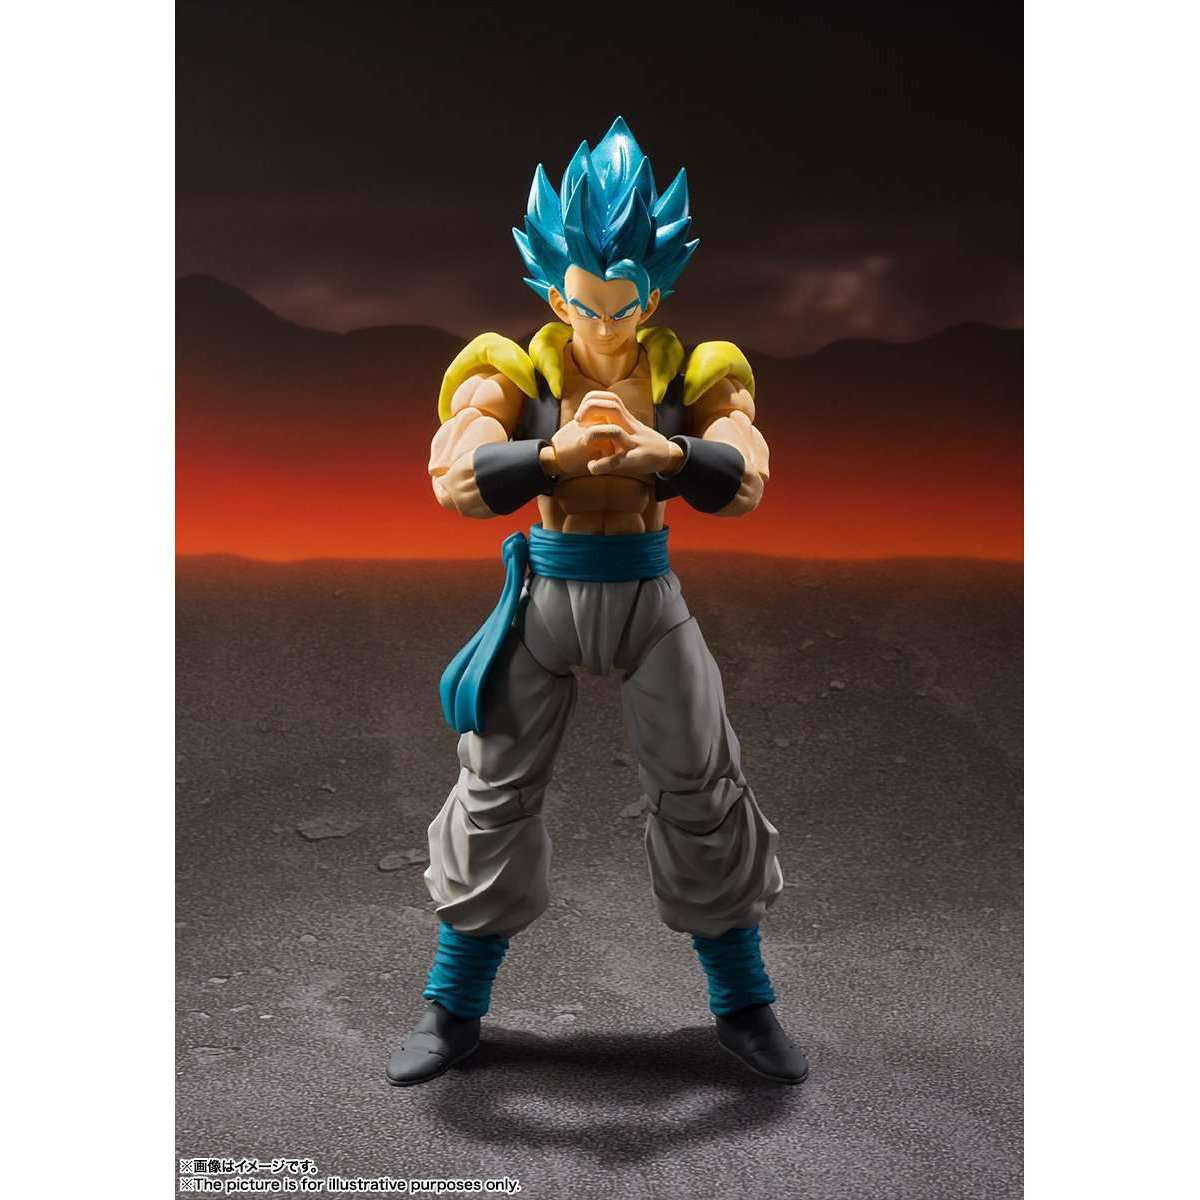 Image of Dragon Ball Super: Broly (Movie) S.H. Figuarts - Gogeta SSGS (Super Saiyan God)